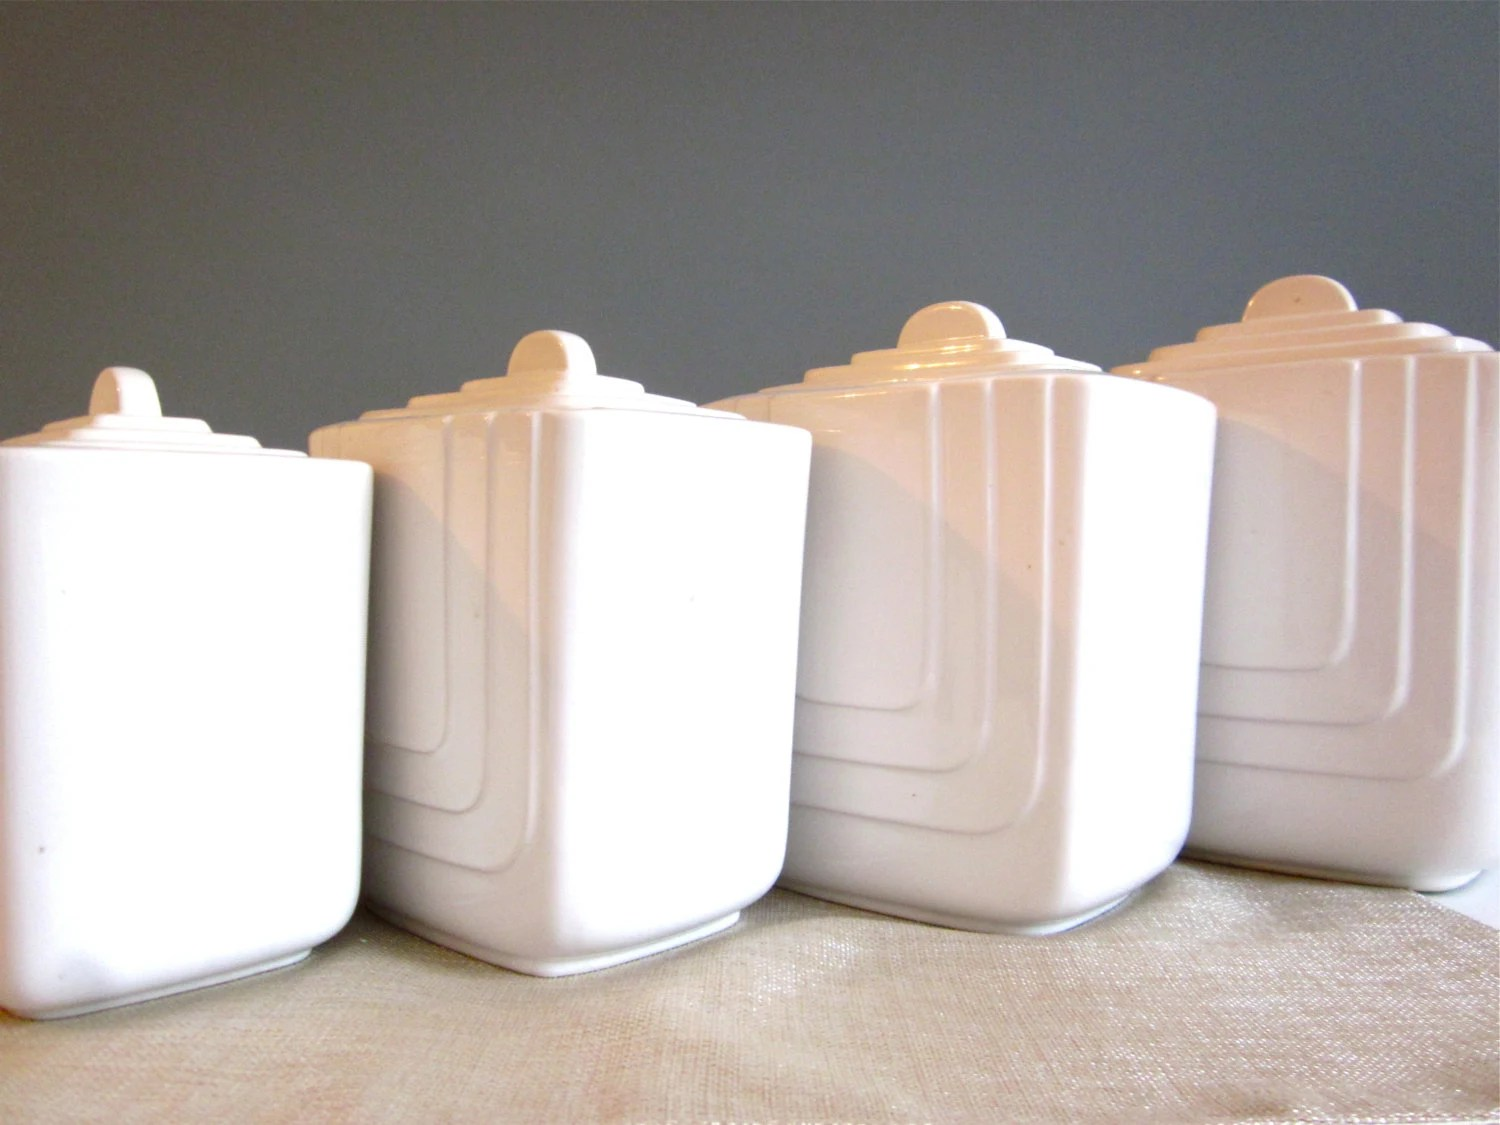 Pottery Ceramic Canisters Sets Compare